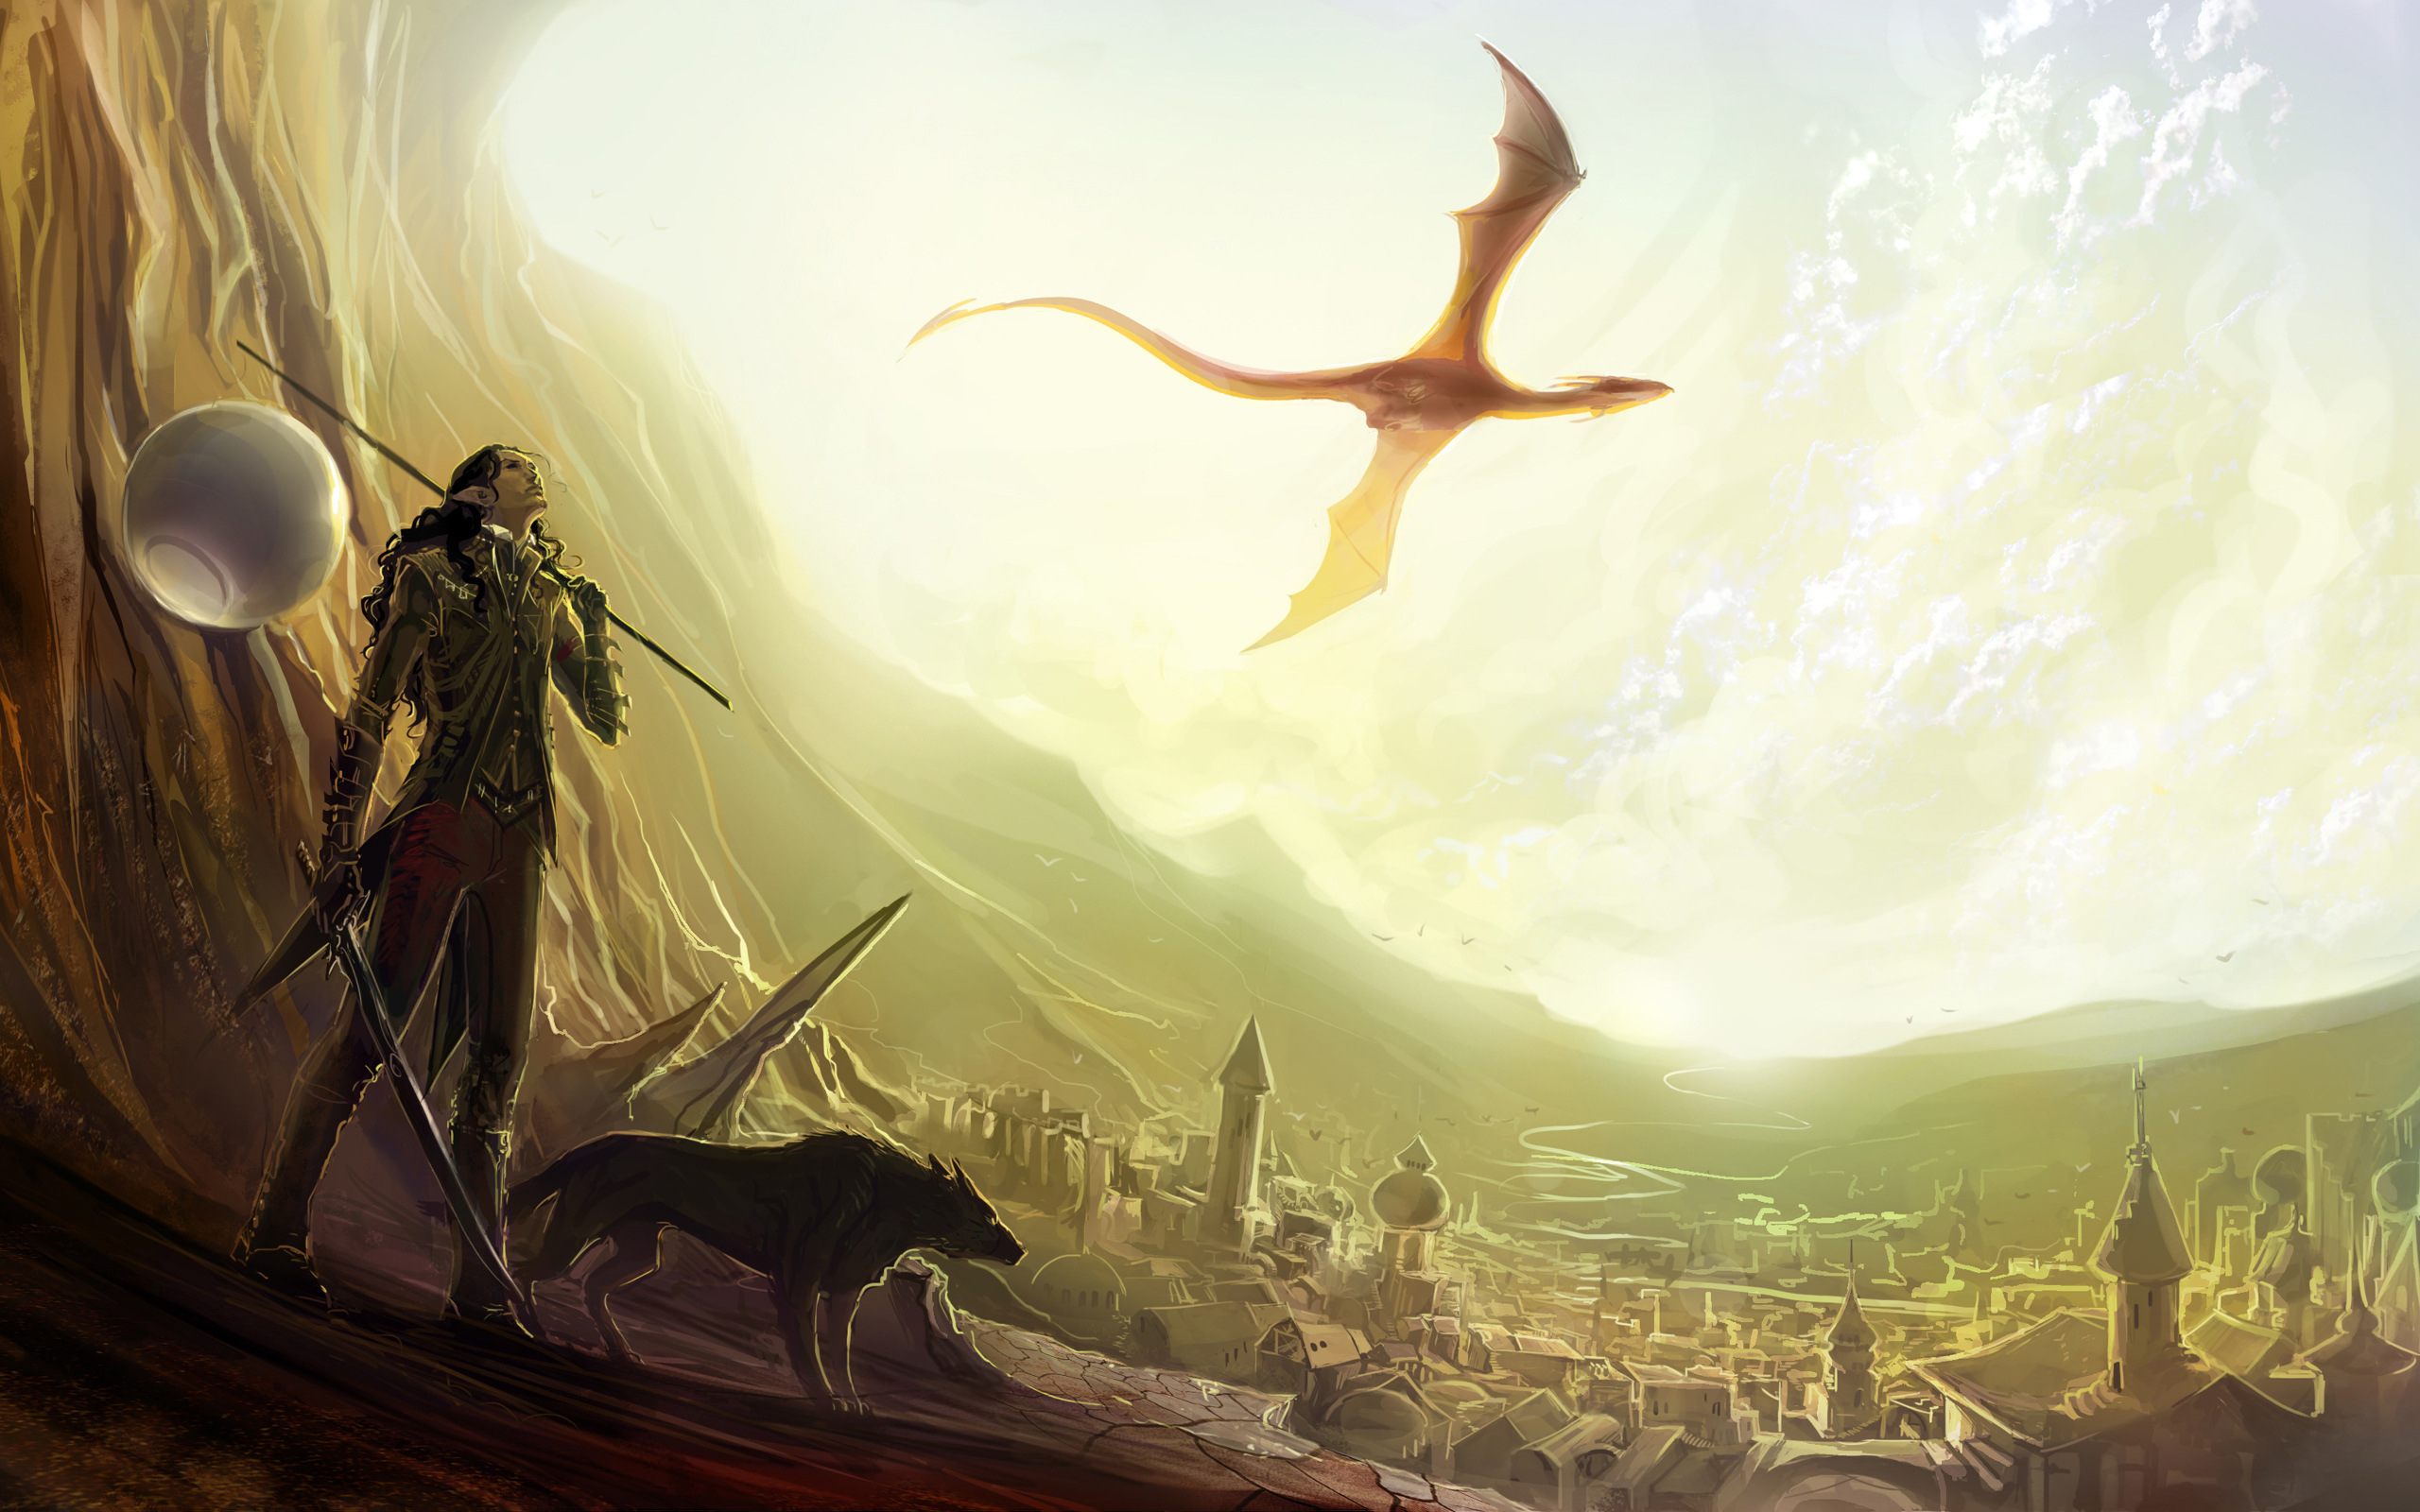 Fantasy Adventure Wallpapers and Background Images   stmednet 2560x1600